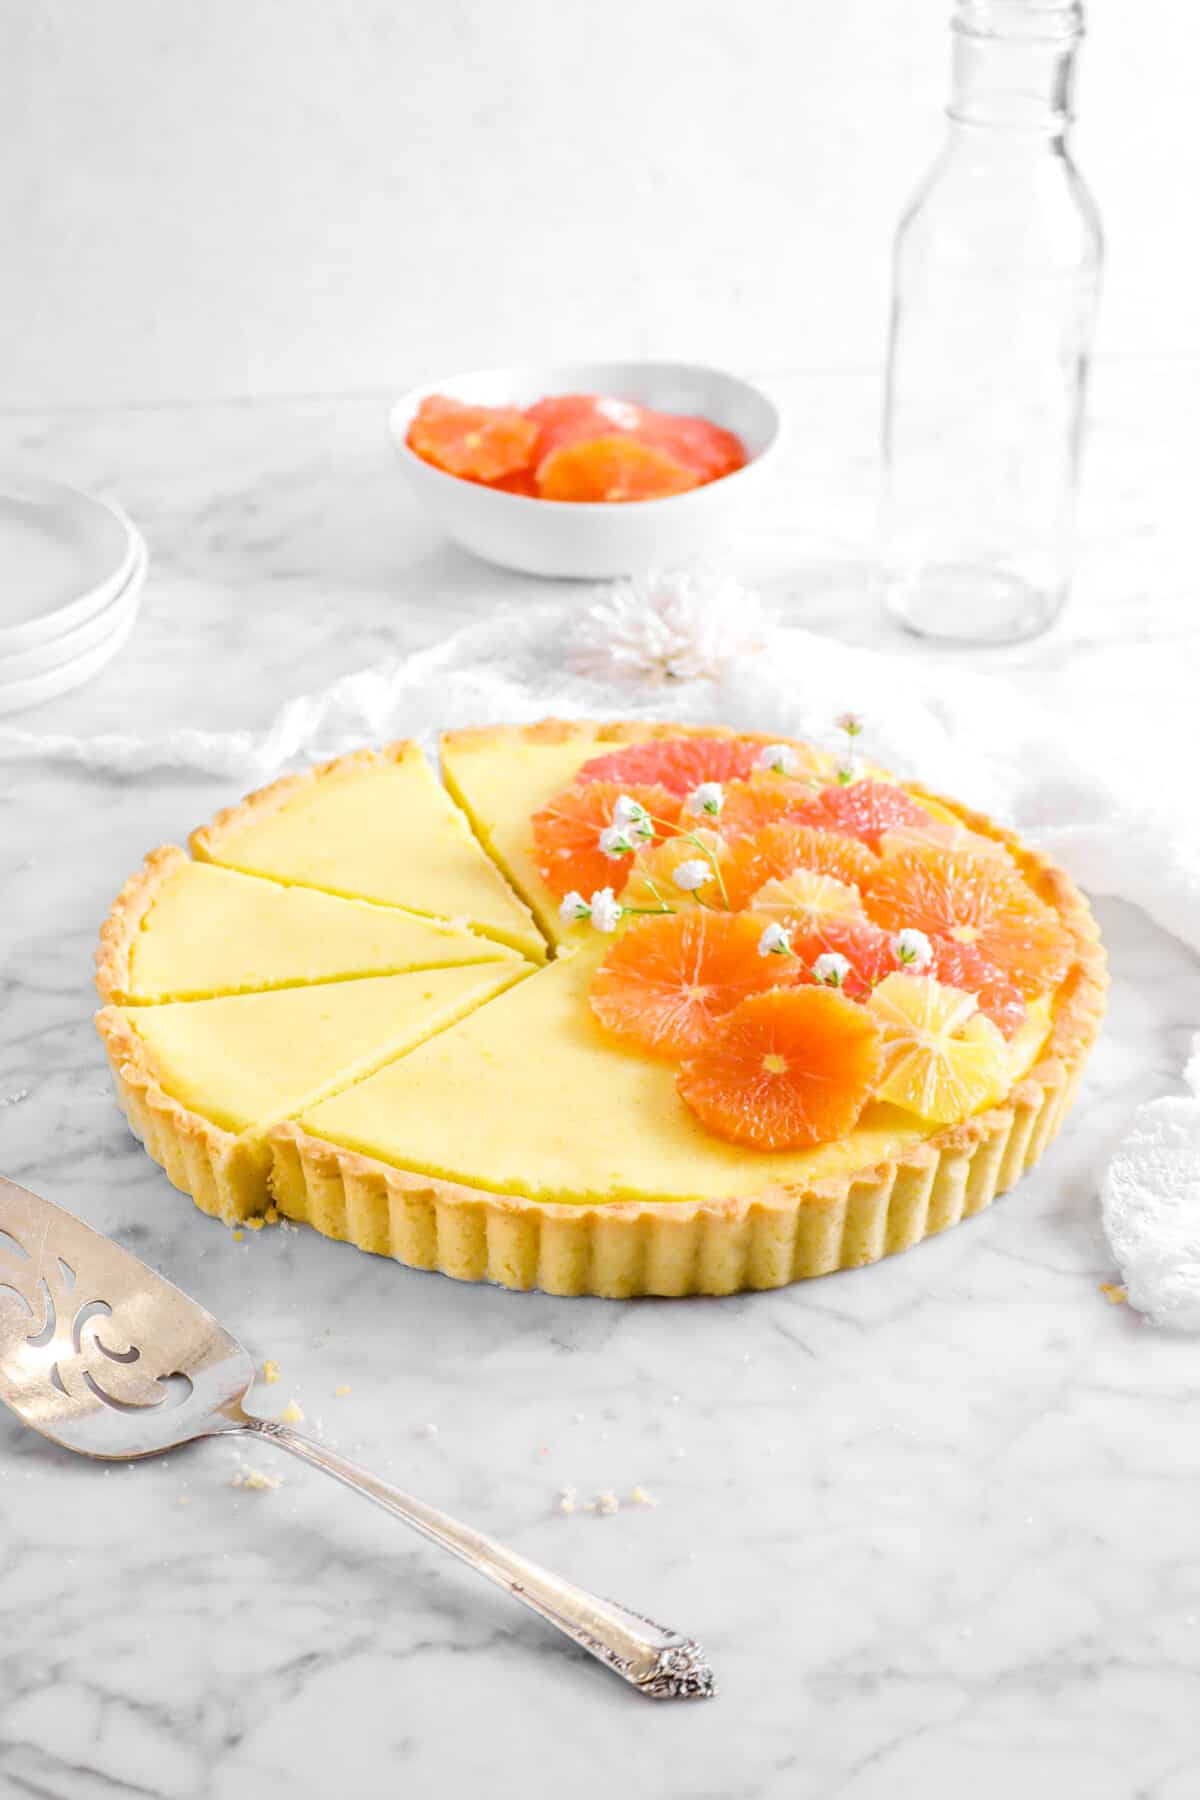 citrus tart with three slices laying next to it, a cake knife, white napkin, glass, and bowl of citrus slices